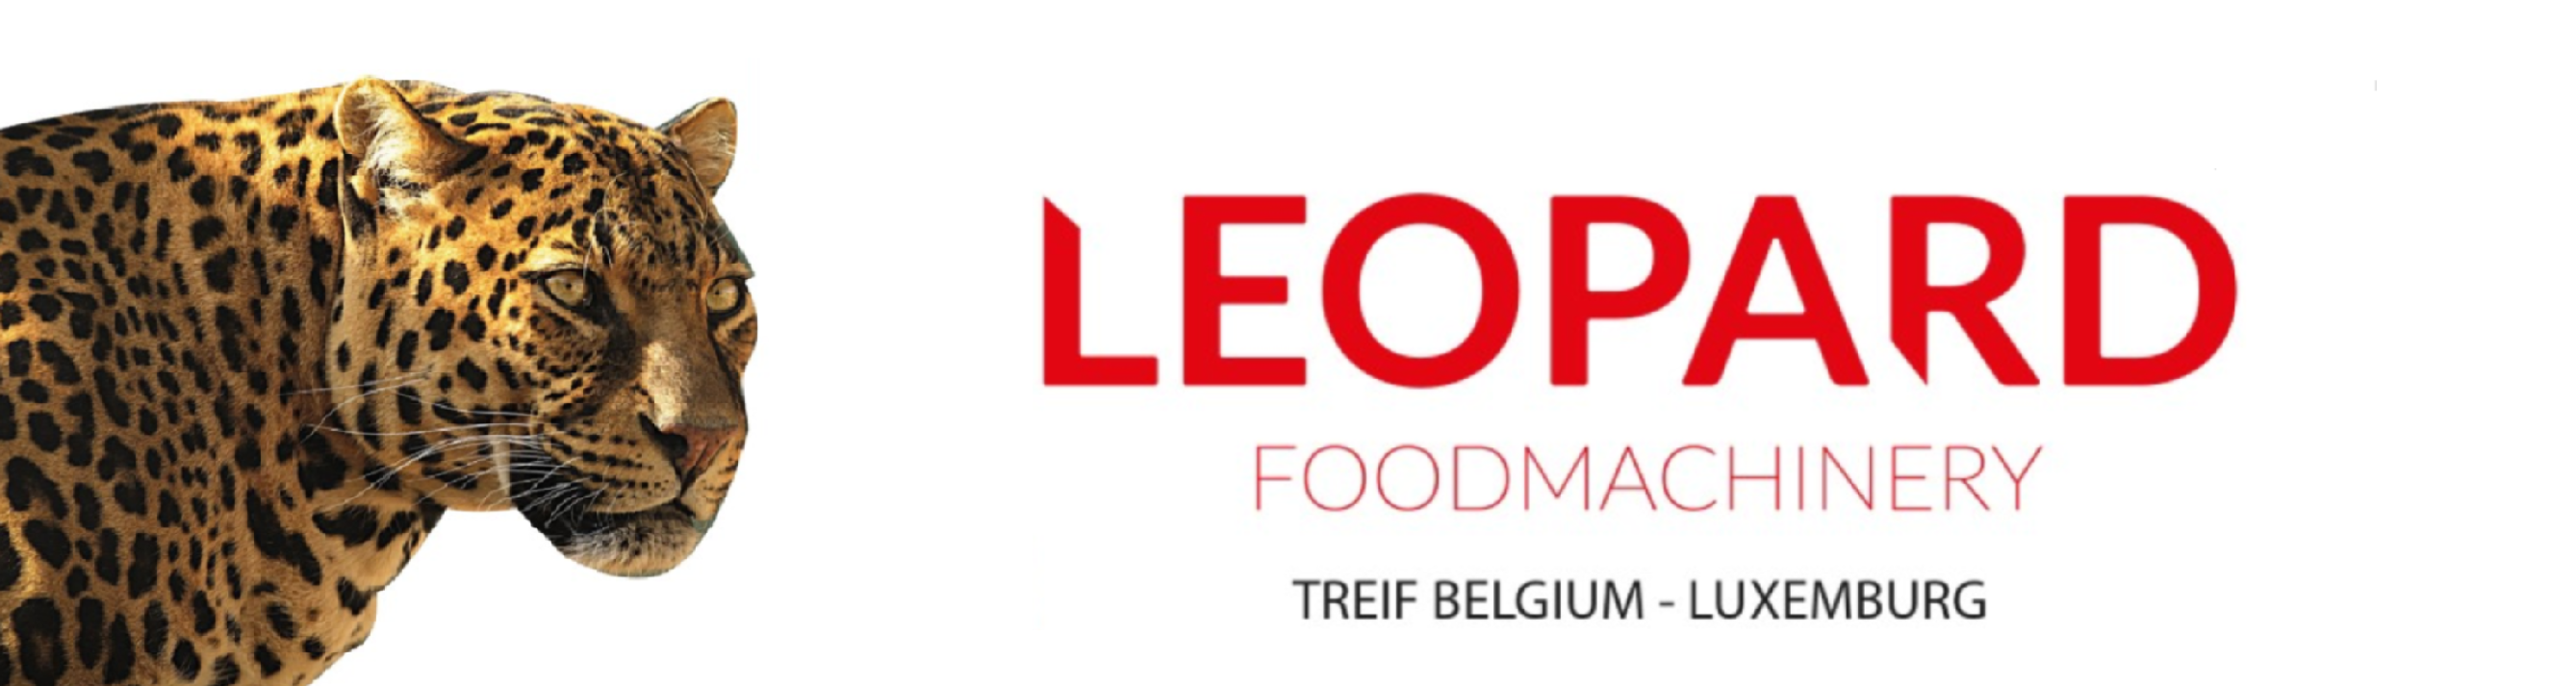 Leopard Foodmachinery